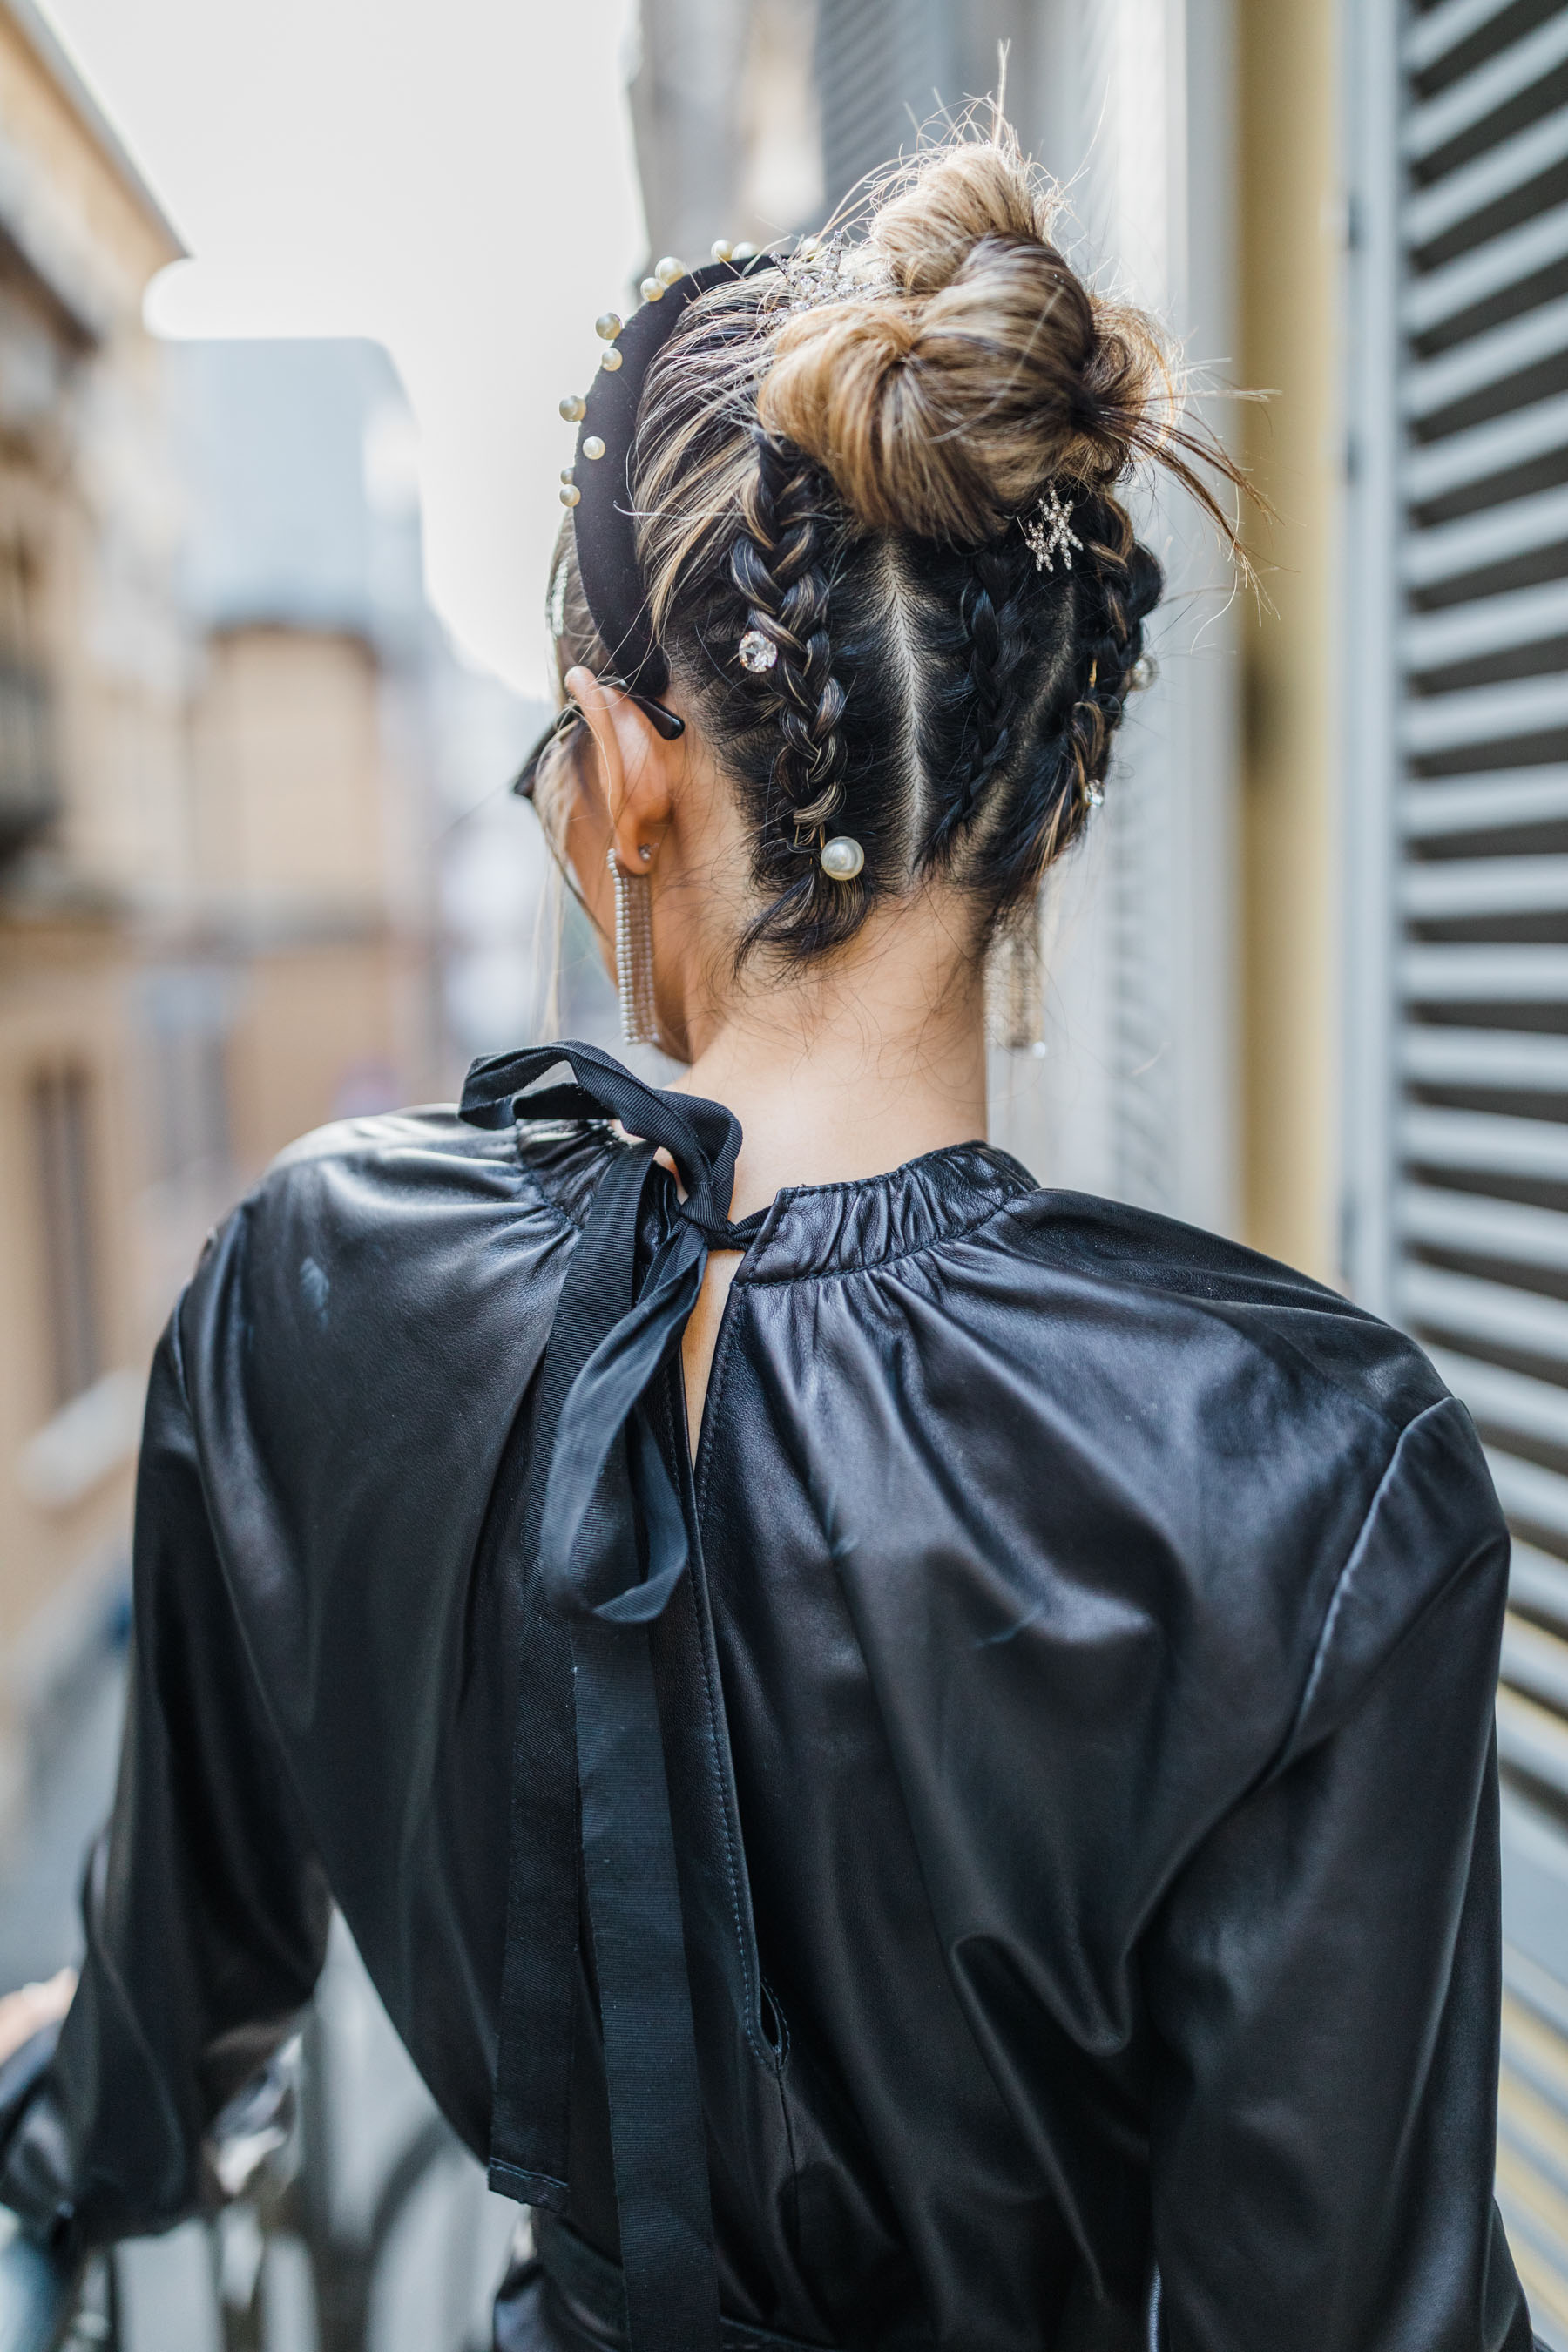 fashion week hair style, fashion week hair trends, headband trend, pearls in hair, mfw hair trends // Notjessfashion.com